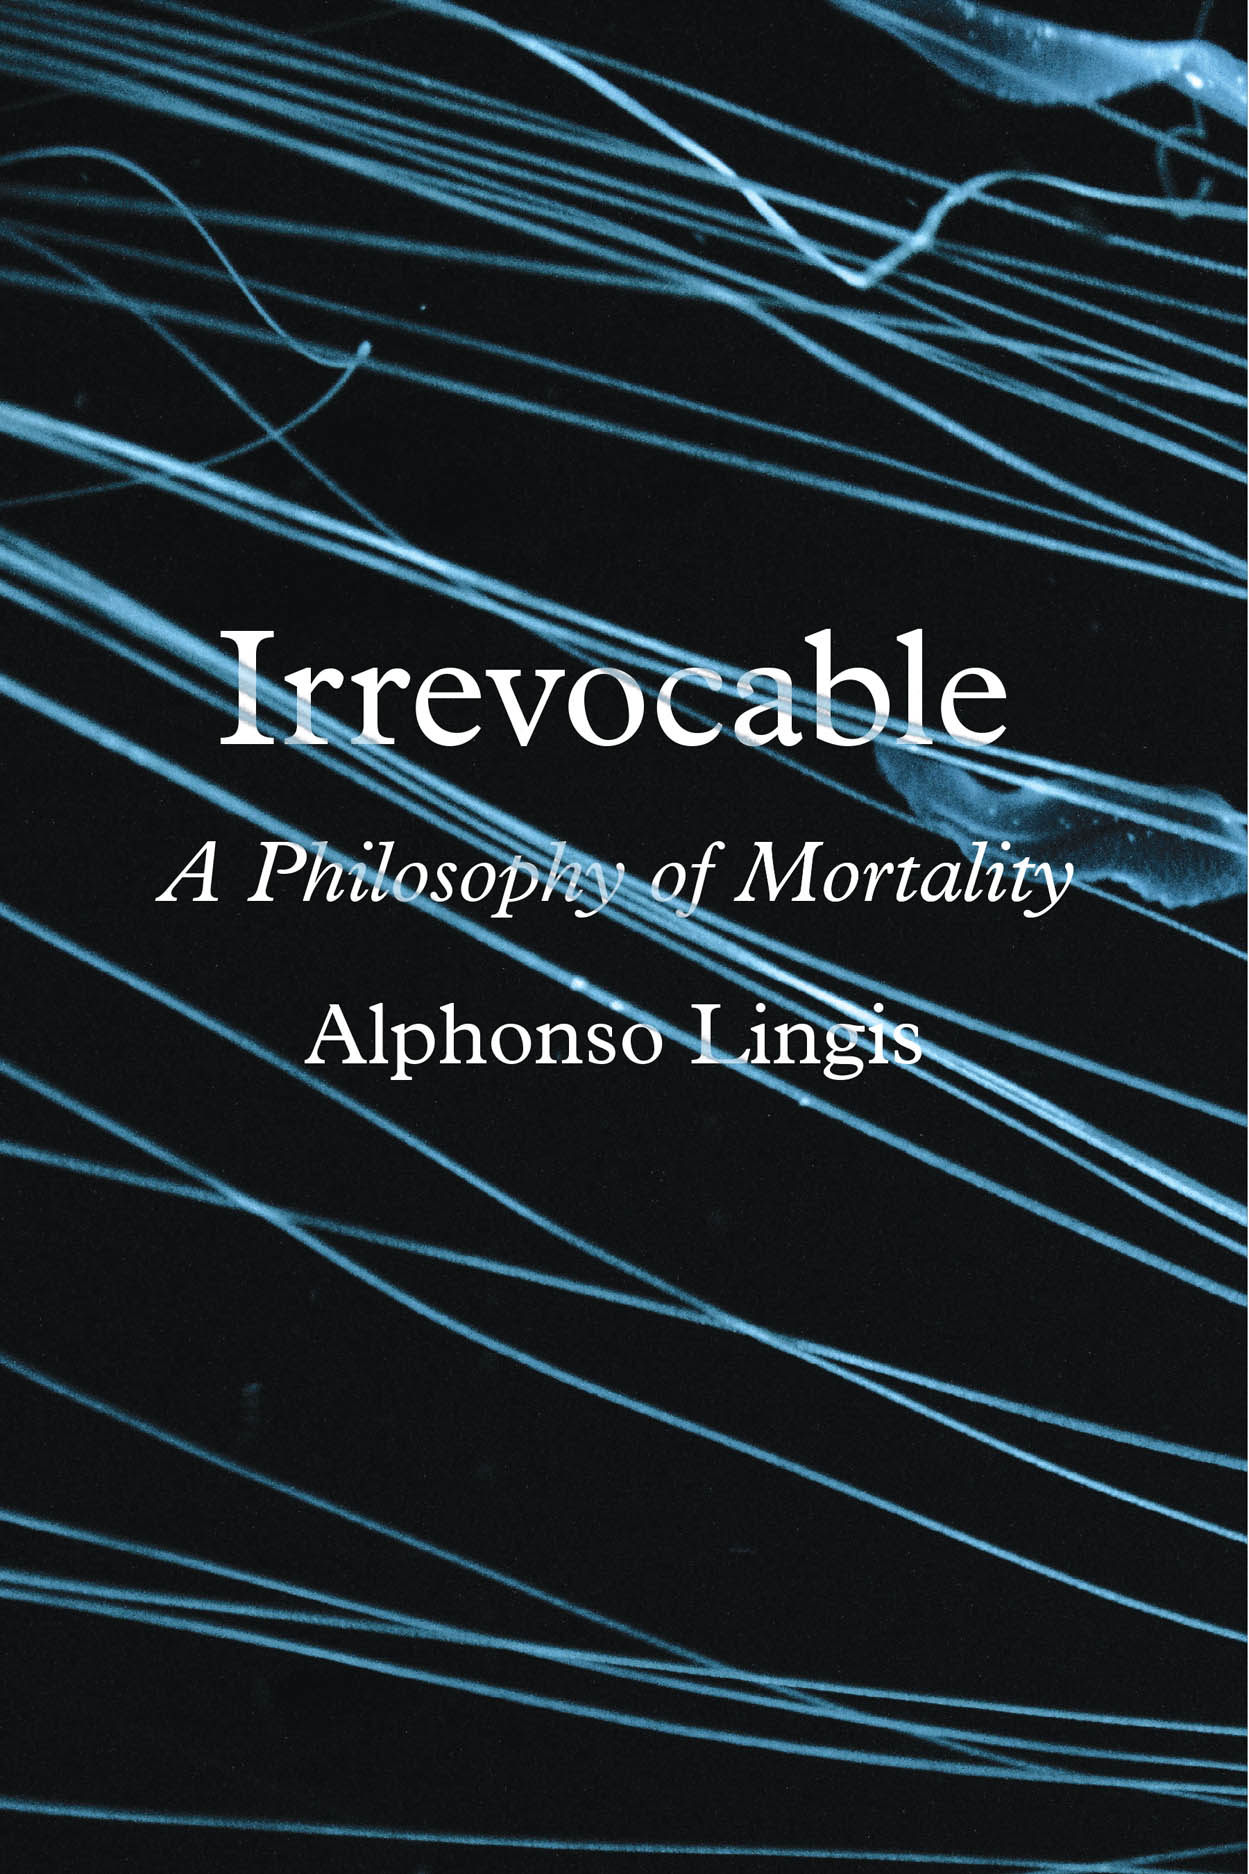 Irrevocable: A Philosophy of Mortality